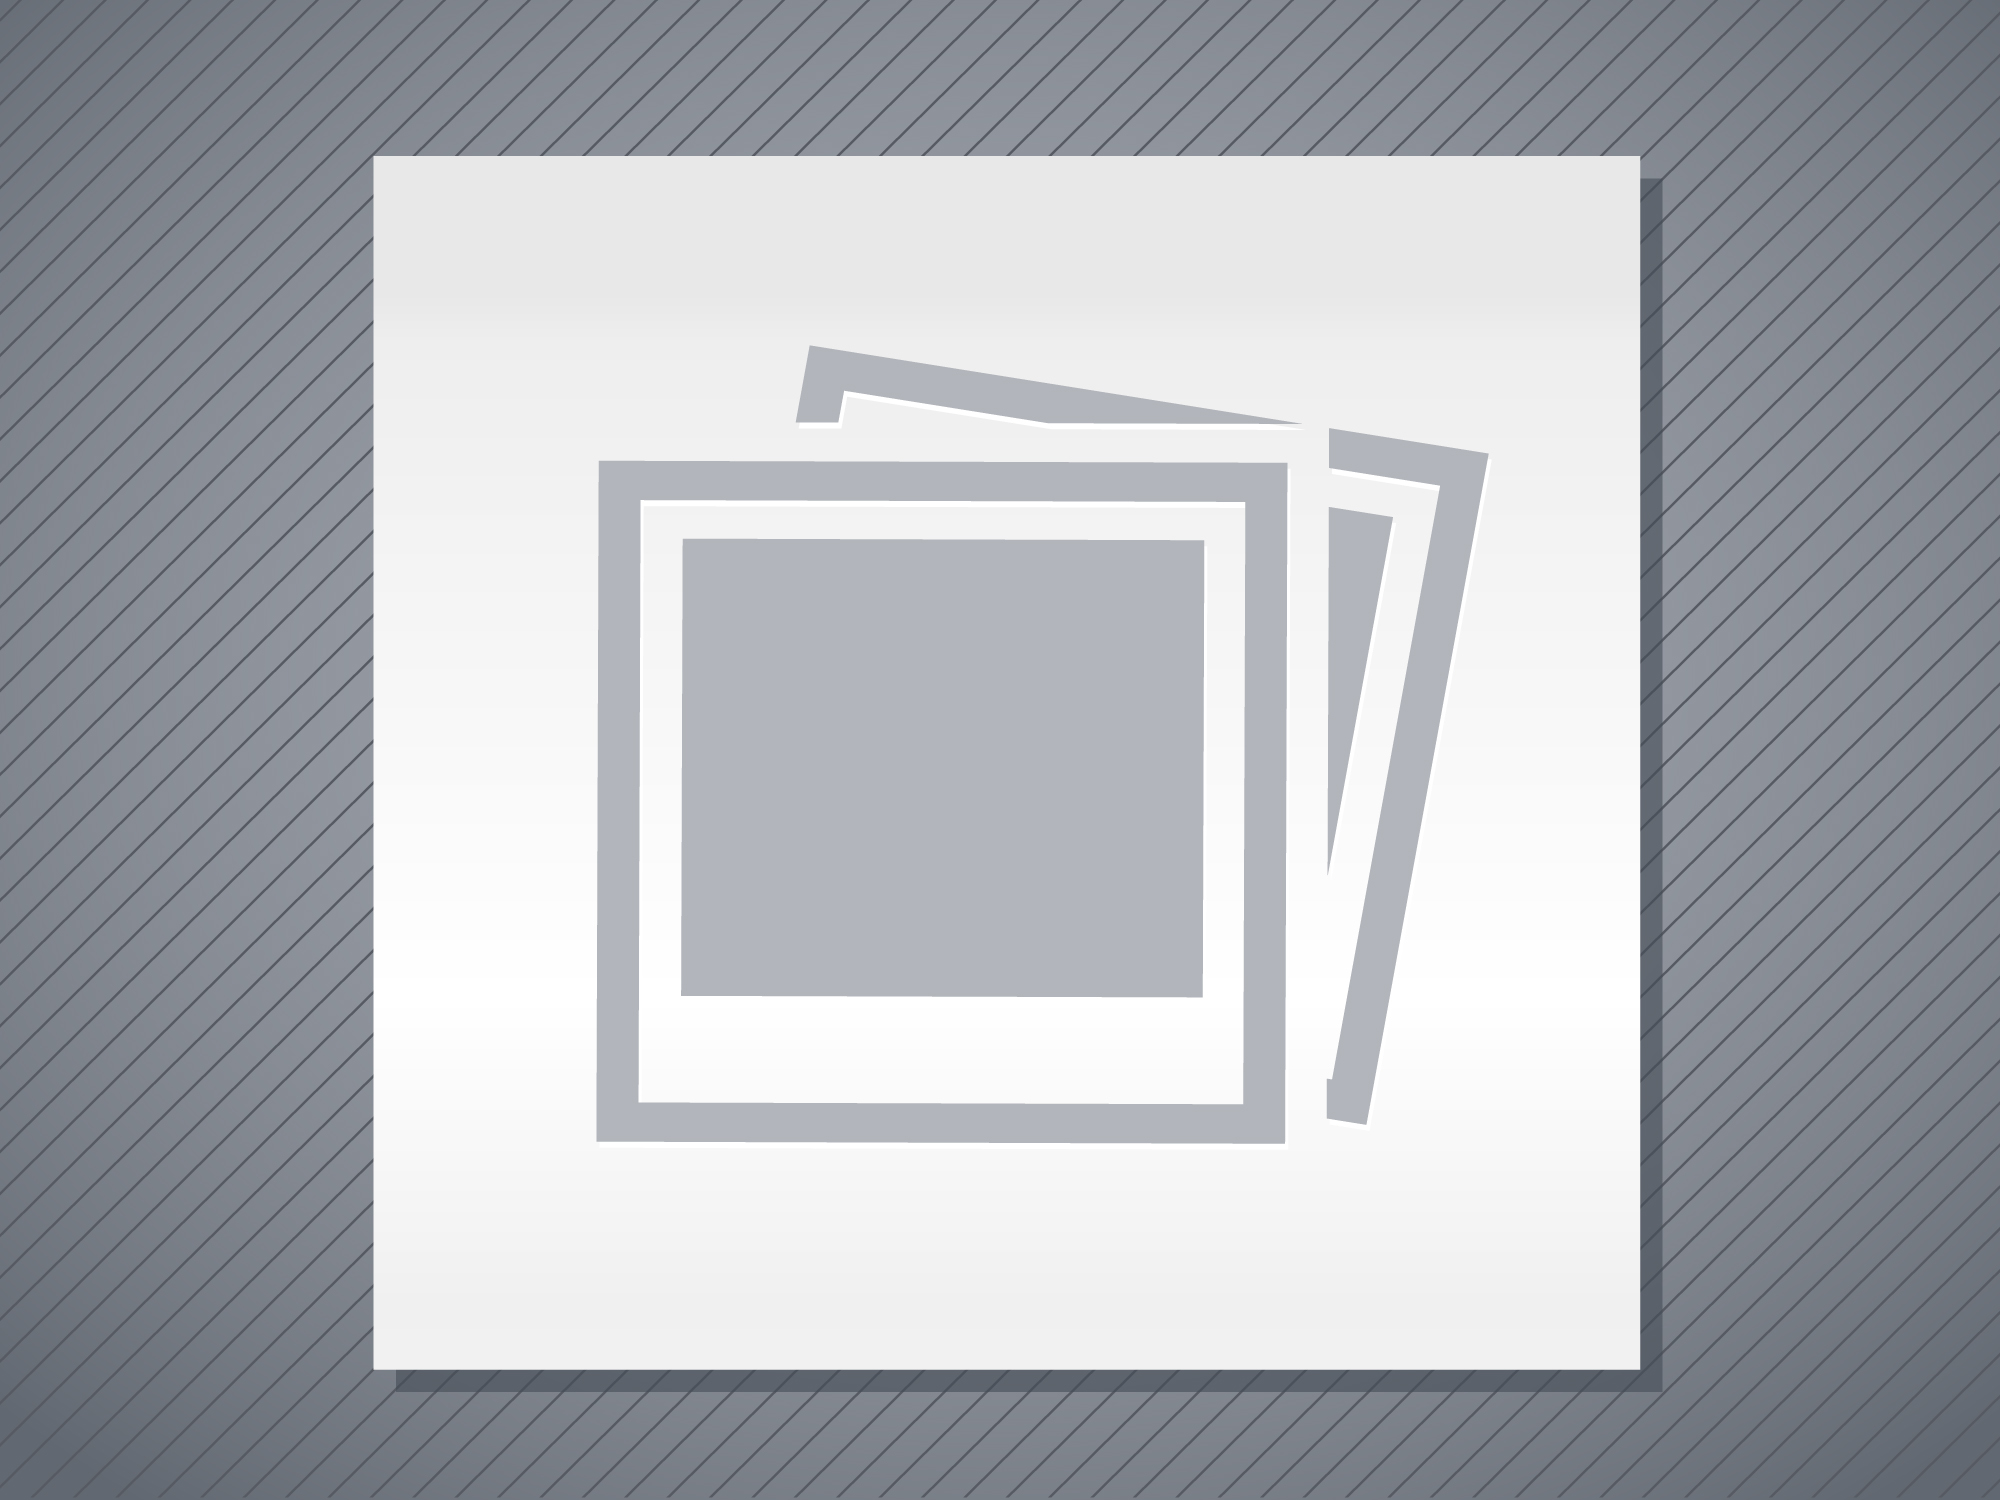 Kohl's Yes2You Rewards